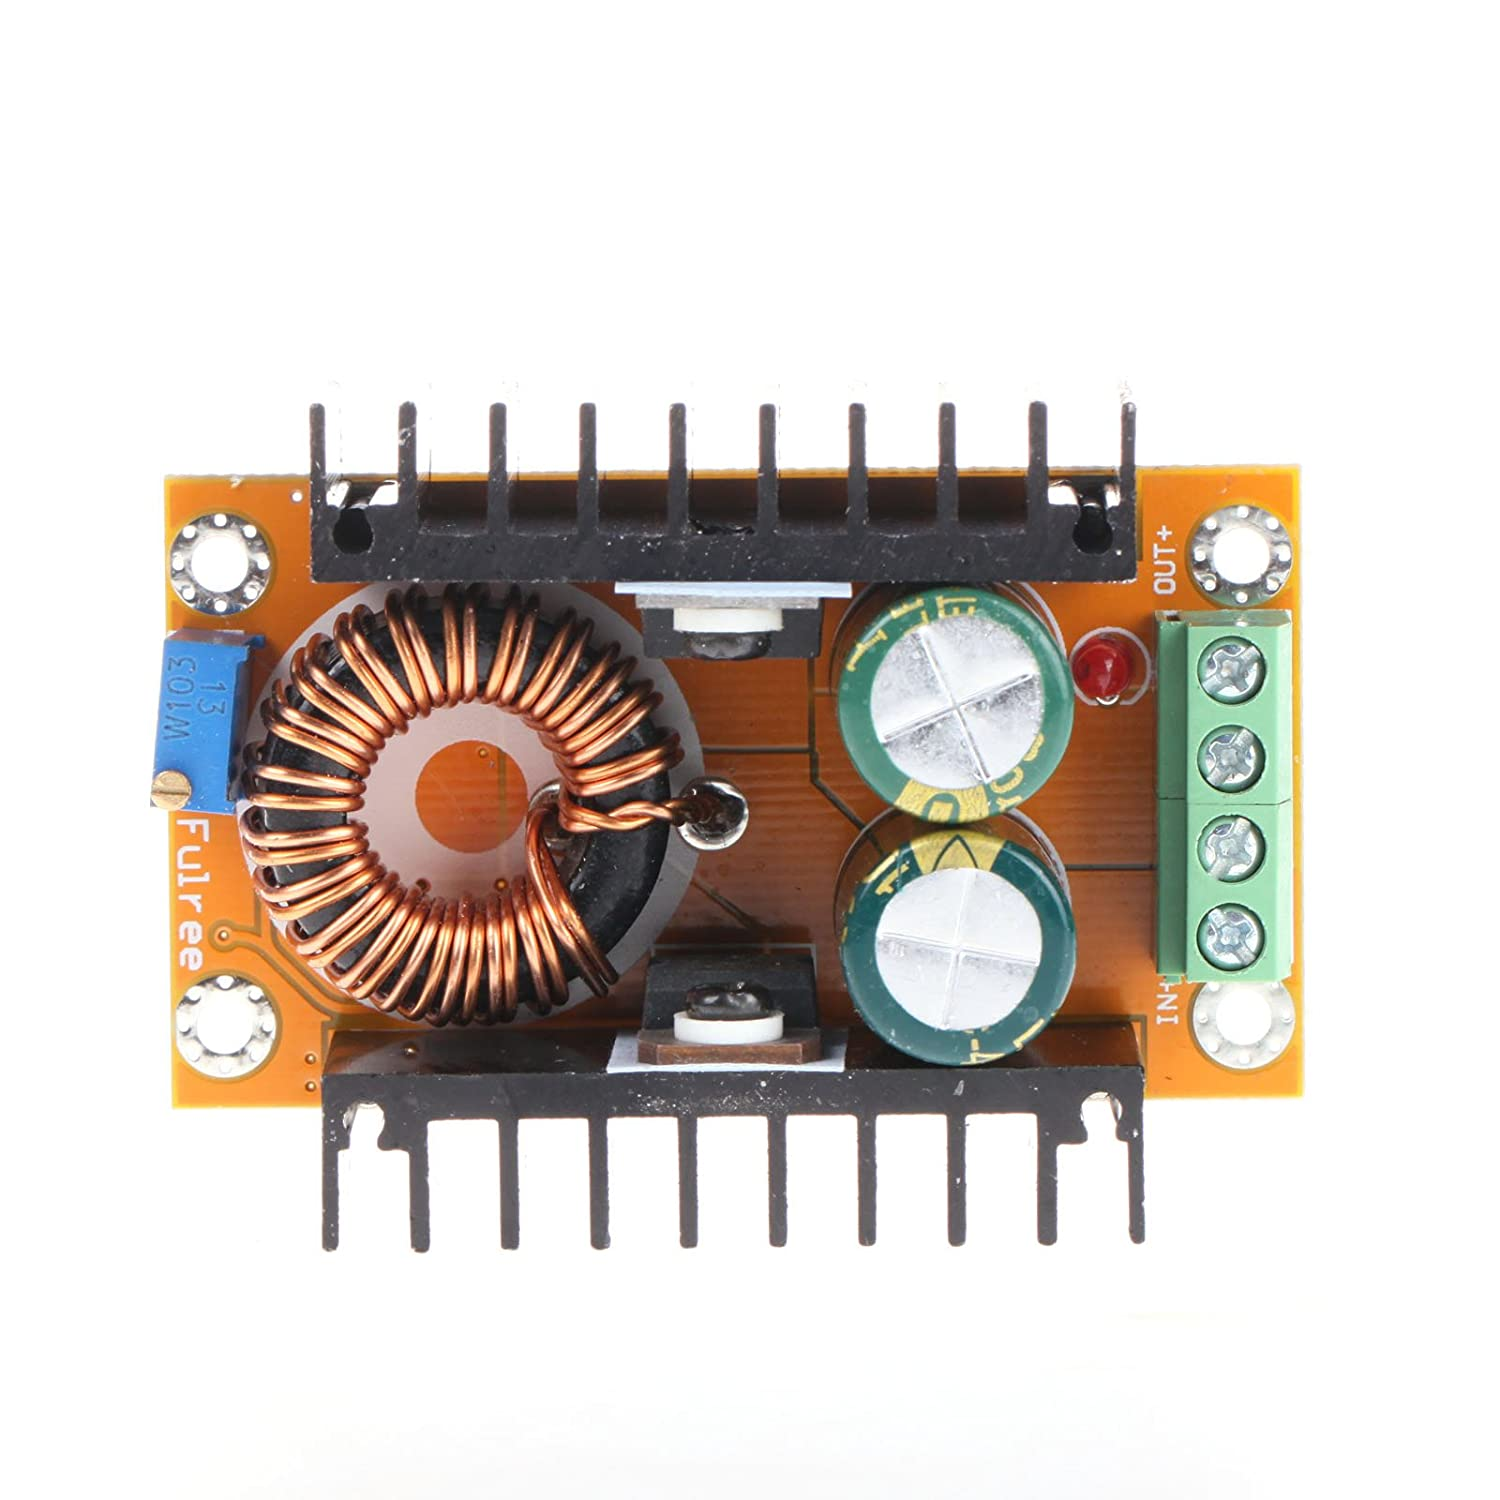 100w Dc Boost Converter In Pakistan Microsolution Lahore Ltc1871 Step Up Power Module Diy A Output Adjustable Car Supply Charger For Example 12v To Charge 48v Battery Electric Device